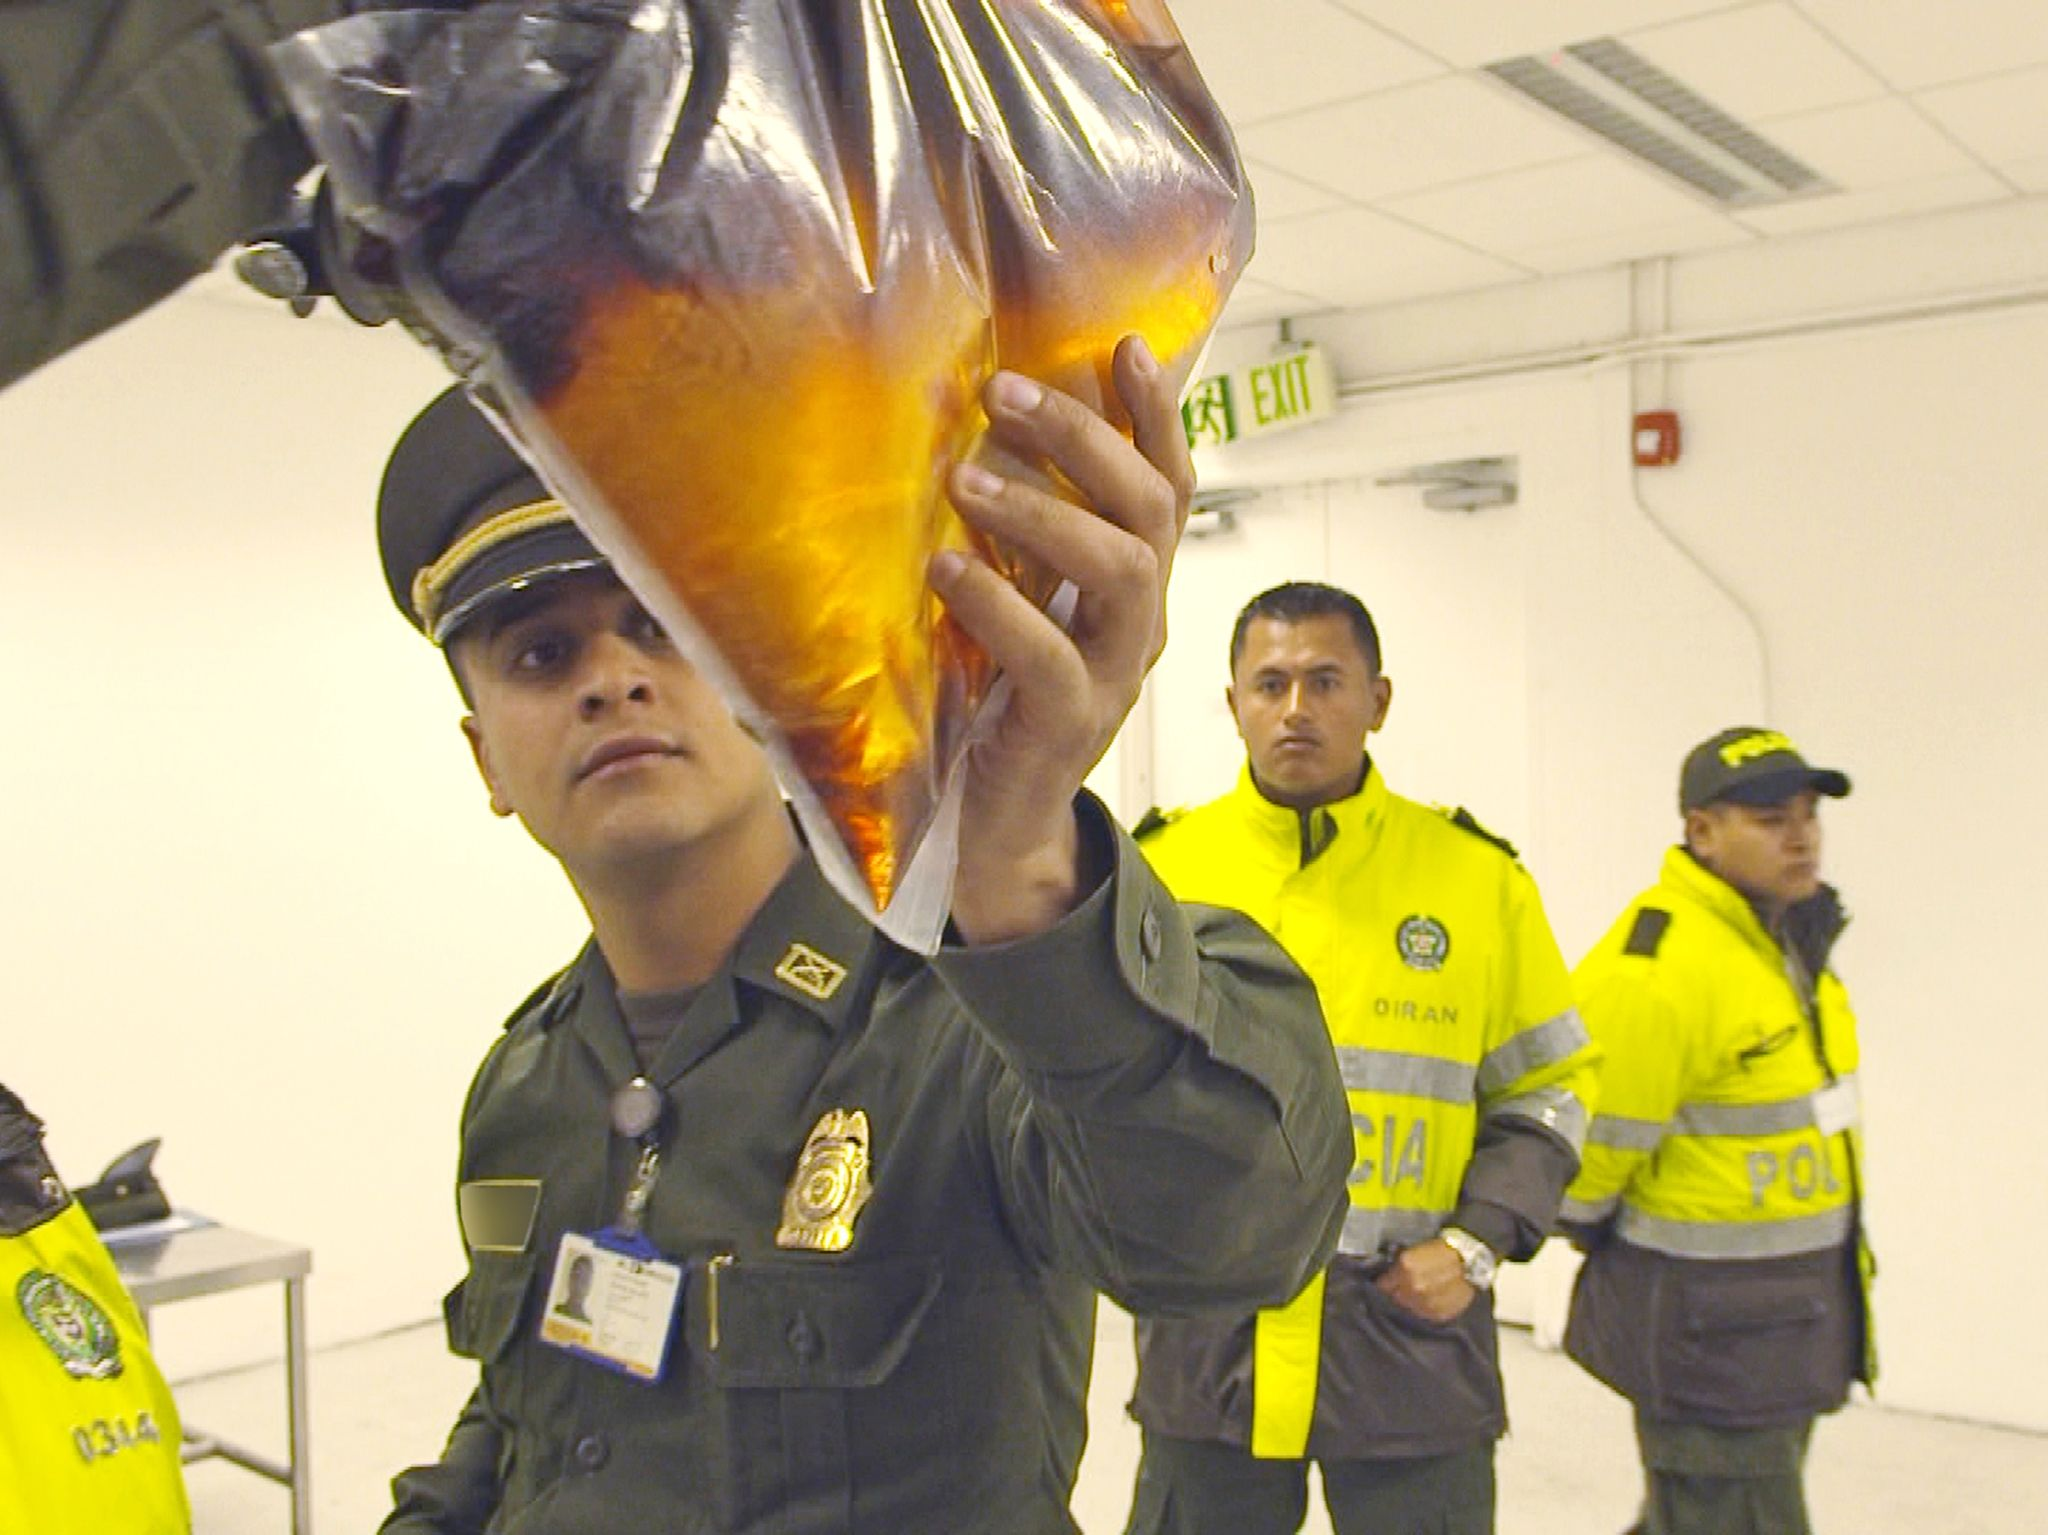 Bogota, Colombia:  An officer examines suspicious fluid. This image is from Airport Security:... [Foto del giorno - ottobre 2017]